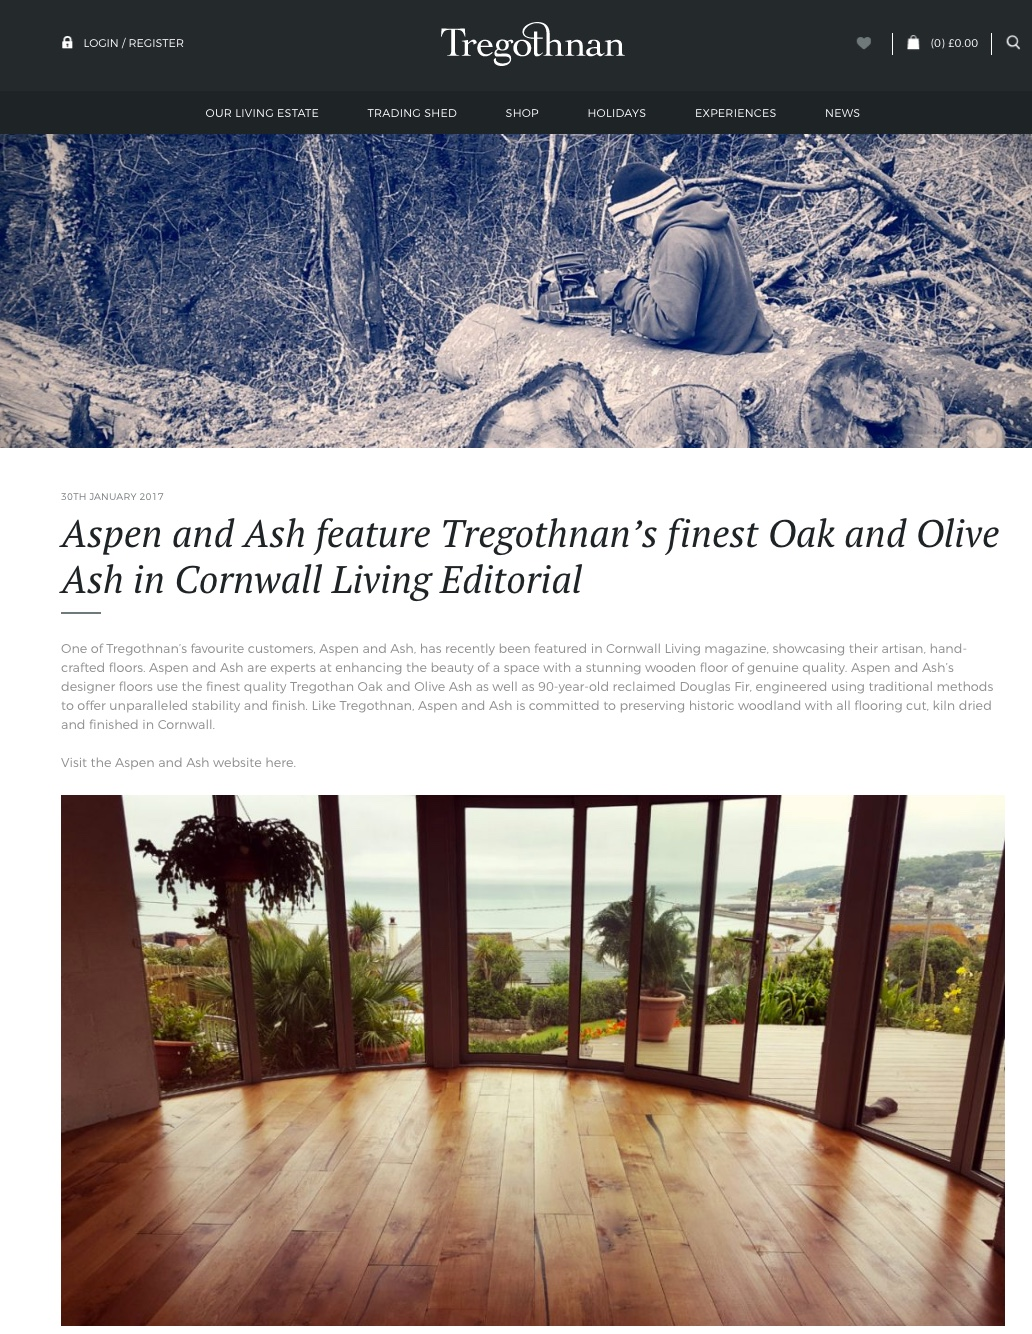 Aspen and Ash feature in Cornwall Living, and then Tregothnan…